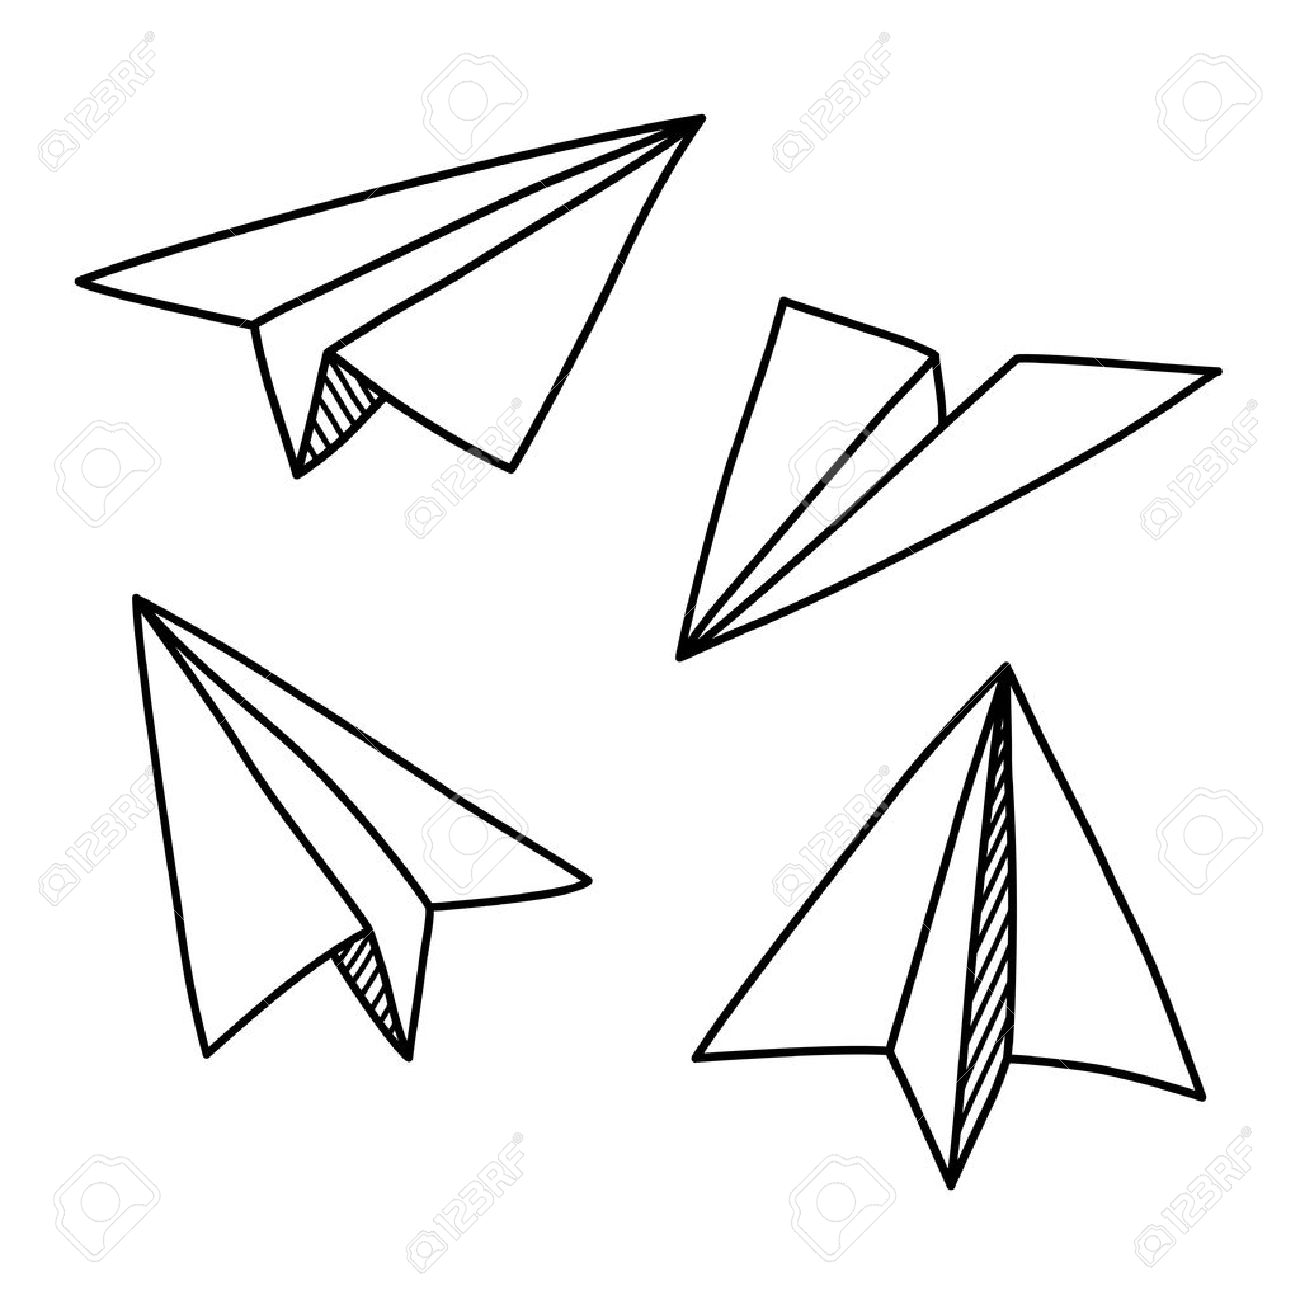 Doodle paper plane set in hand drawn sketch style - 50071705